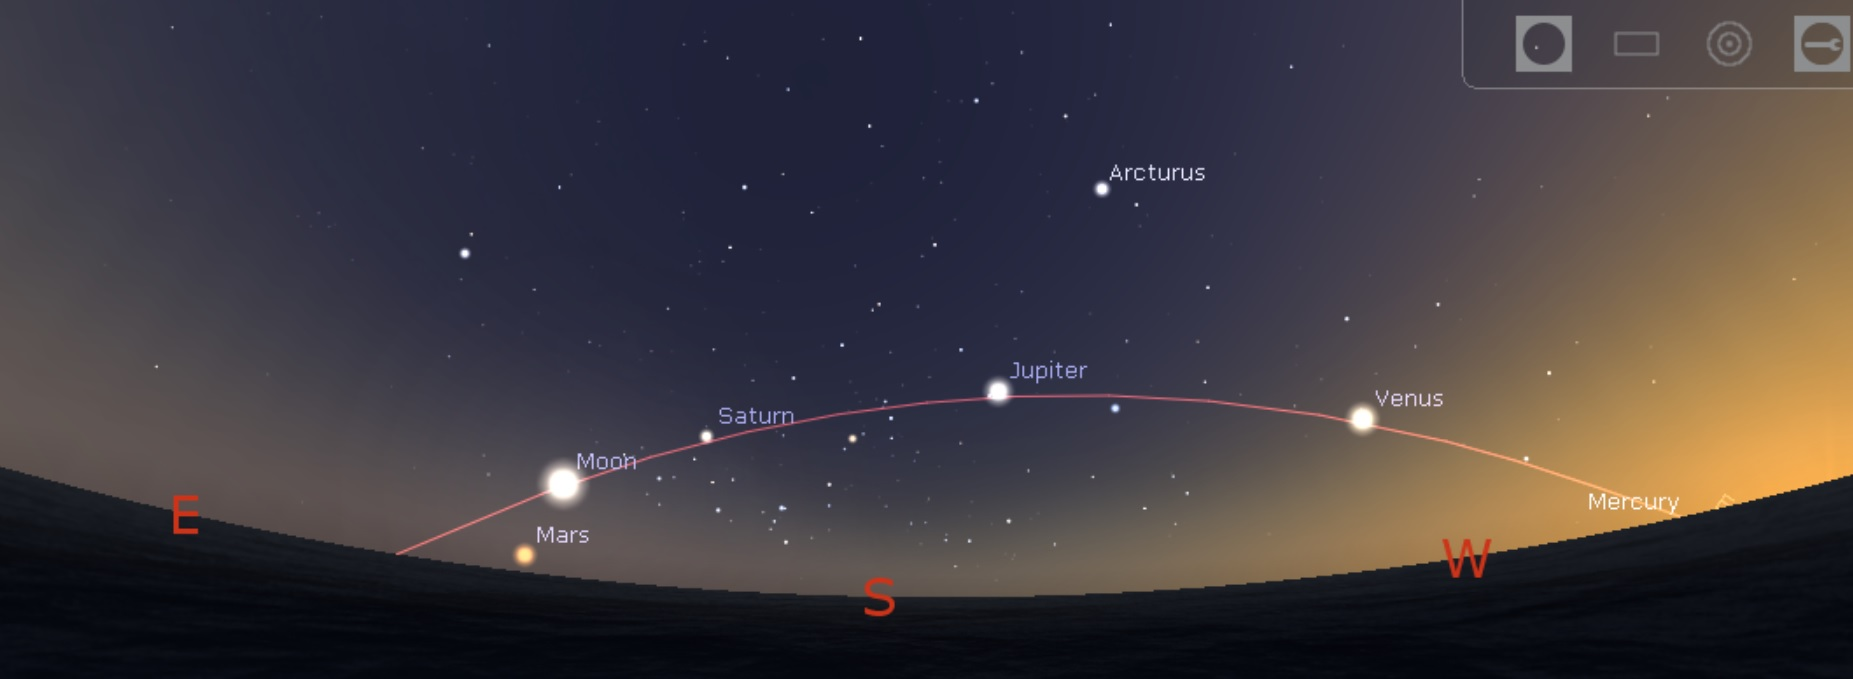 Planetpalooza: All Bright Planets Visible in the July Dusk